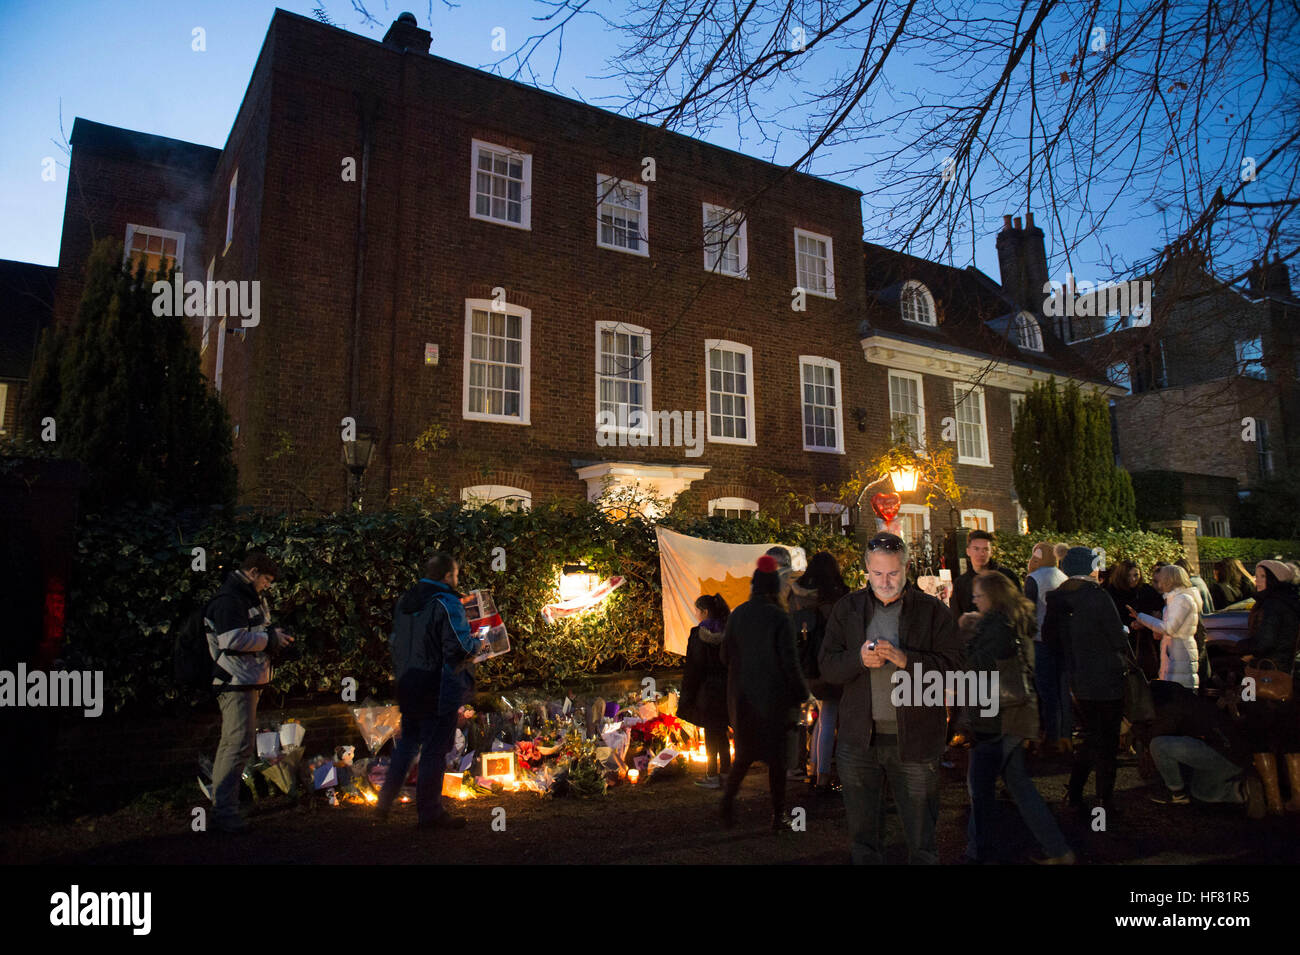 George Michaels Home In Highgate, North London Christmas 2020 Mourners gather at George Michael's house in Highgate, North